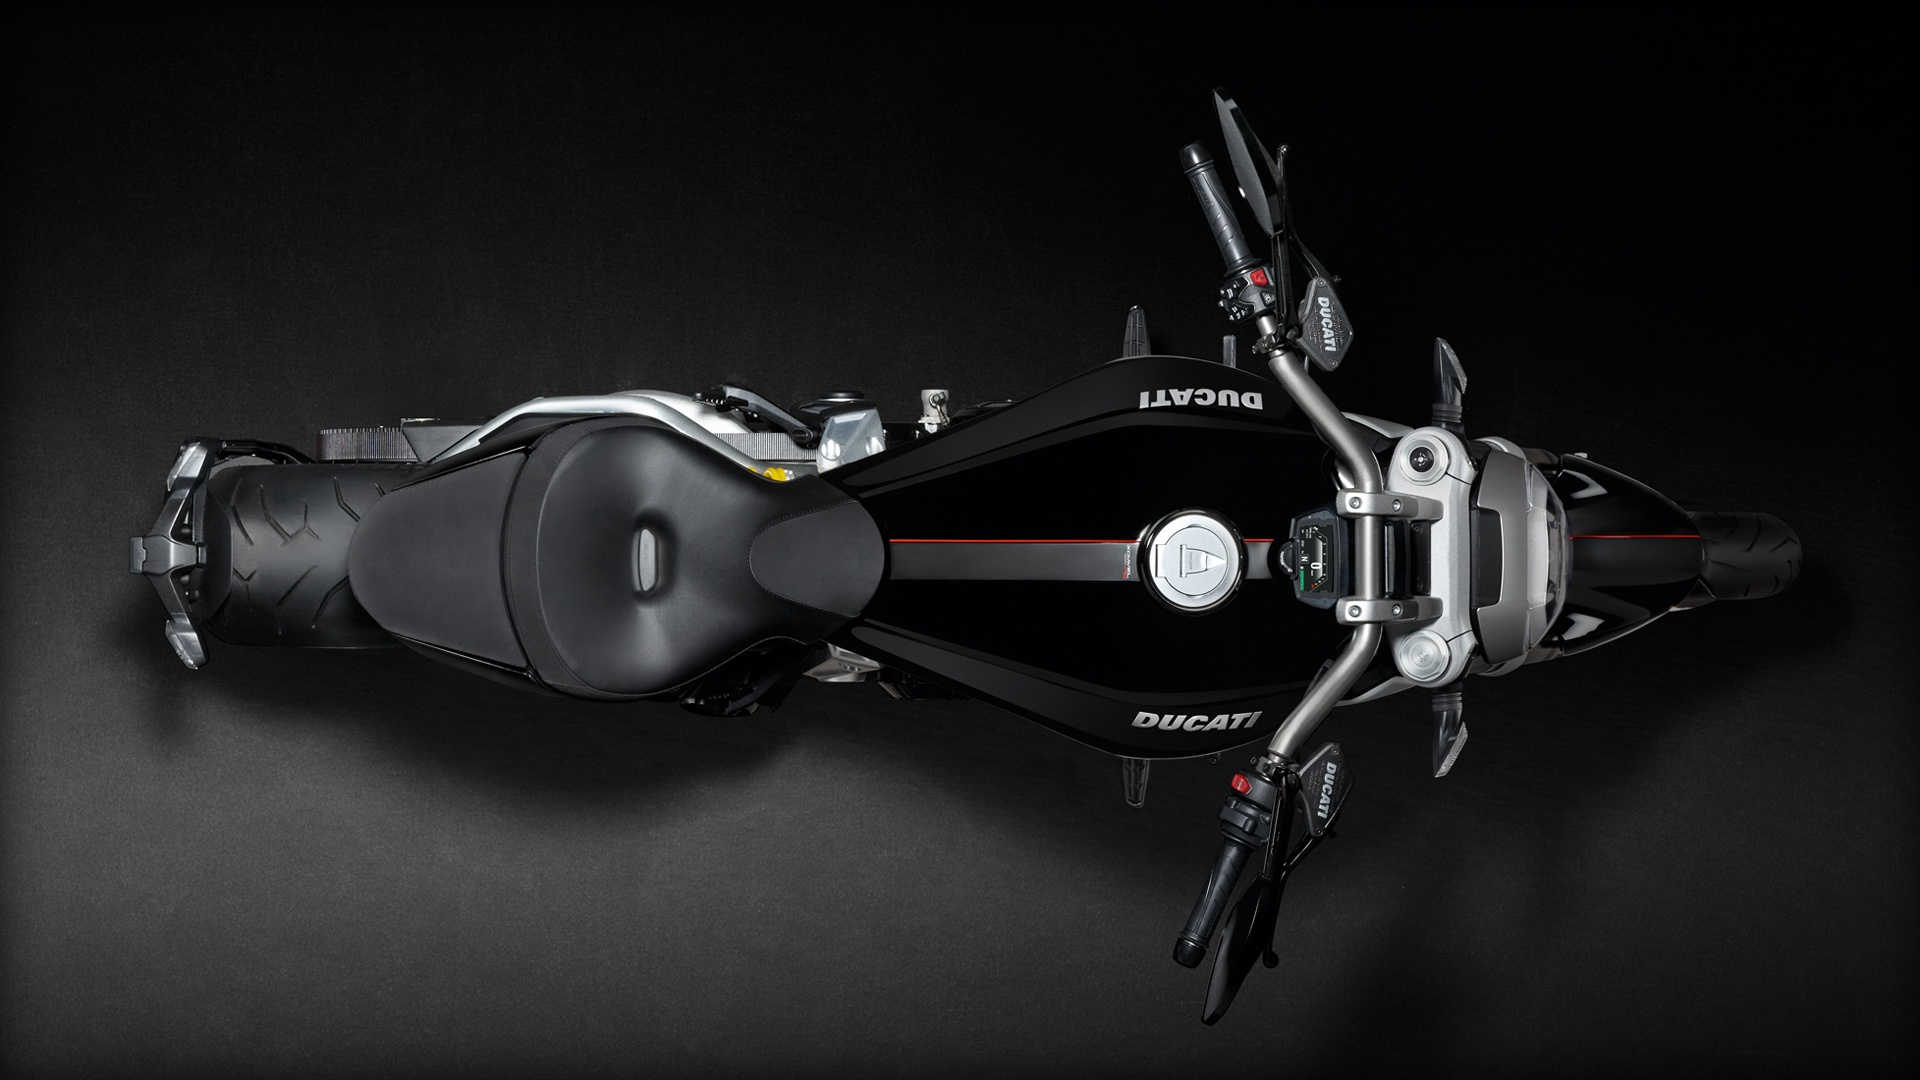 xdiavel-s_2016_studio_o01_1920x1080-mediagallery_output_image_1920x1080